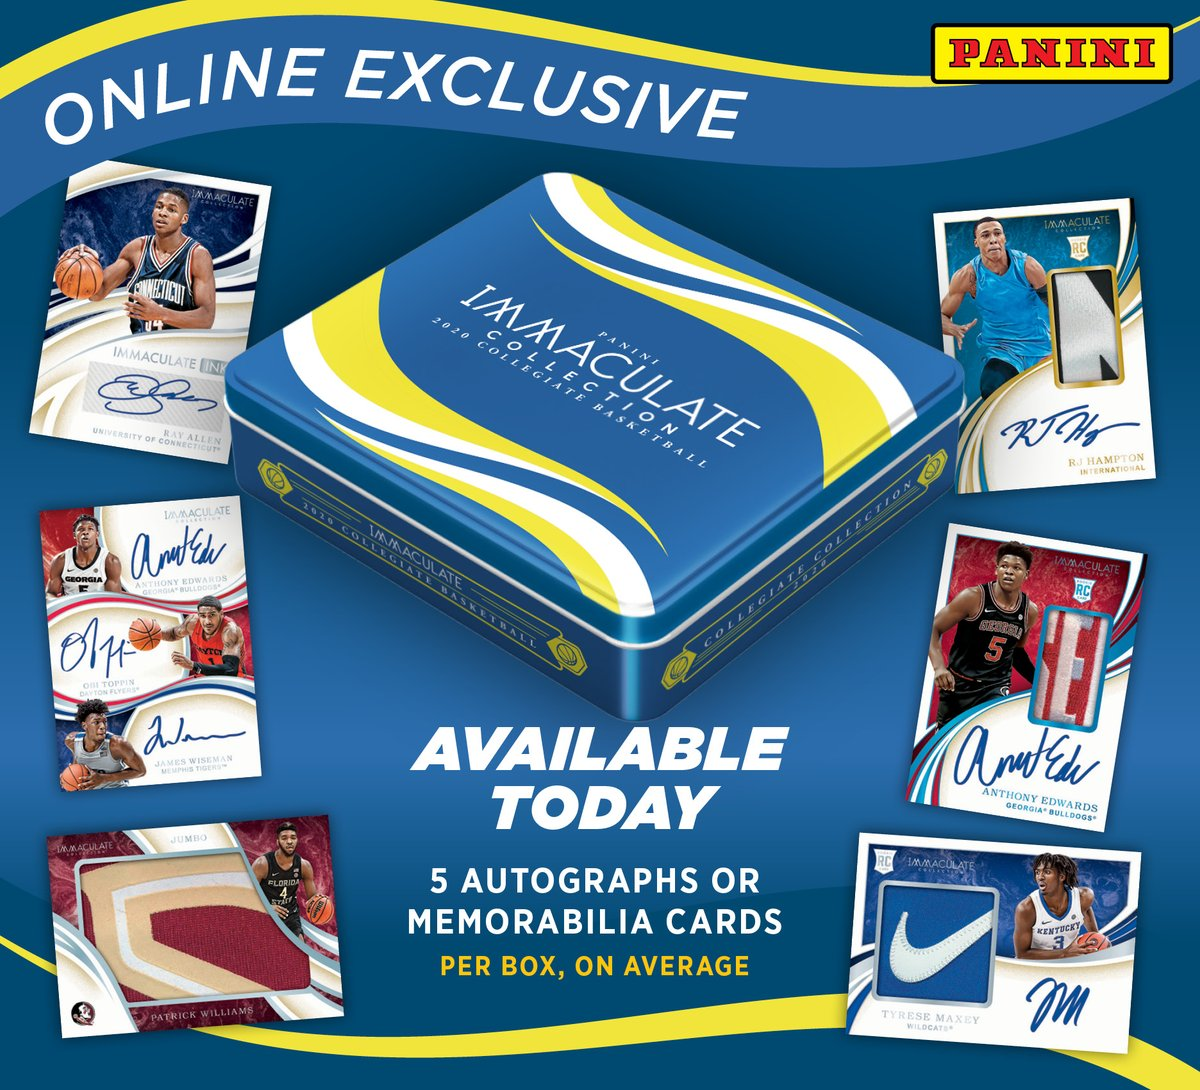 .@PaniniAmerica's online-exclusive 2020 Immaculate Collegiate Basketball goes live at 10 a.m. CST!!!  #WhoDoYouCollect | #NBADraft   https://t.co/TwMQs39JOU https://t.co/oGVRnRpgi5